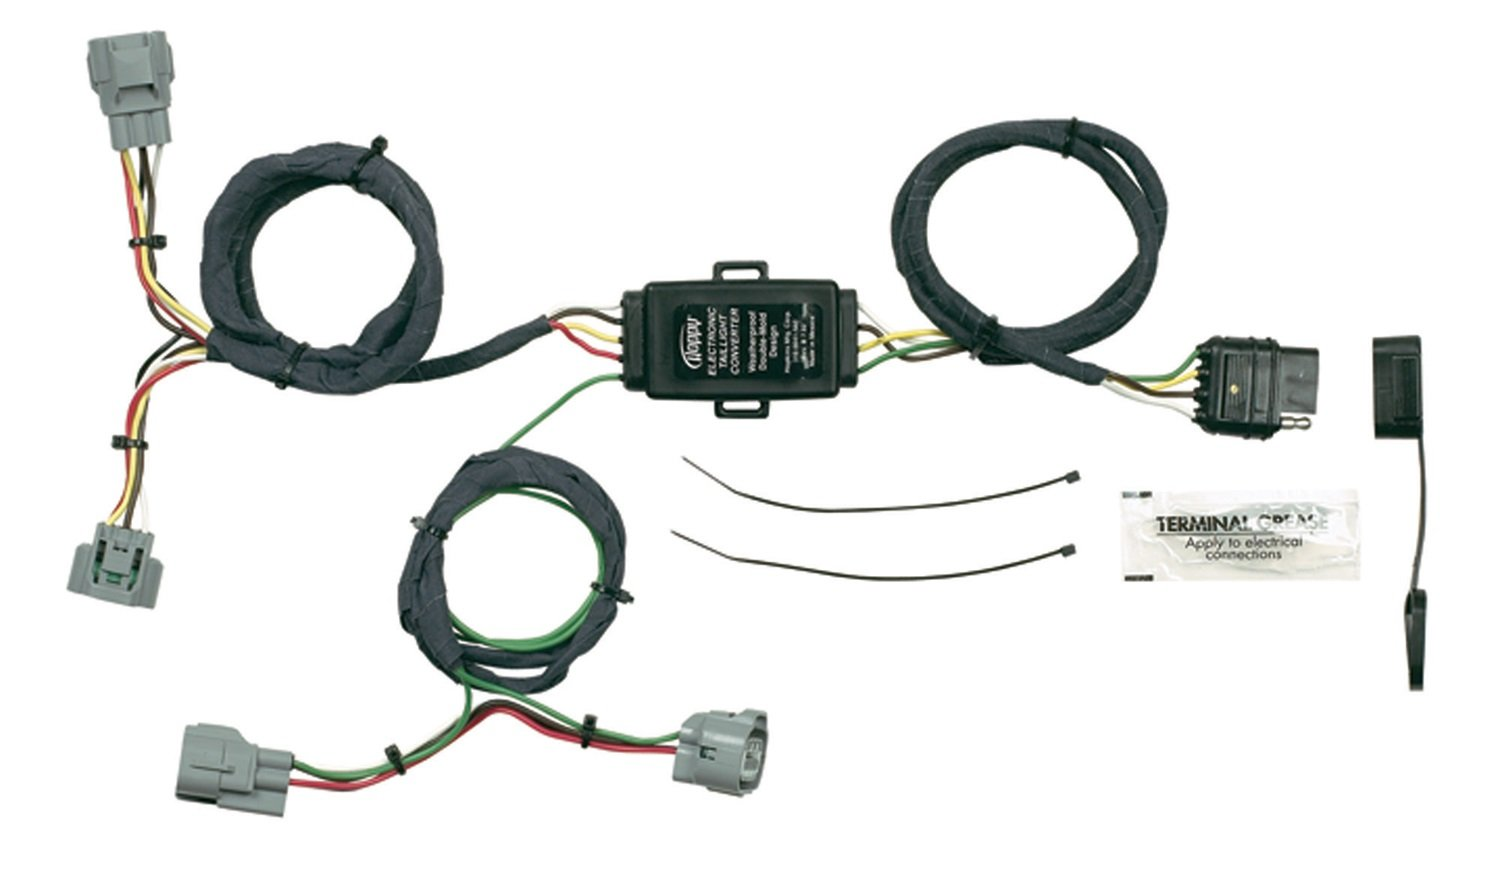 61J3Pn4wzzL._SL1500_ amazon com hopkins 43355 plug in simple vehicle wiring kit Toyota Tacoma Trailer Wiring Harness at bayanpartner.co